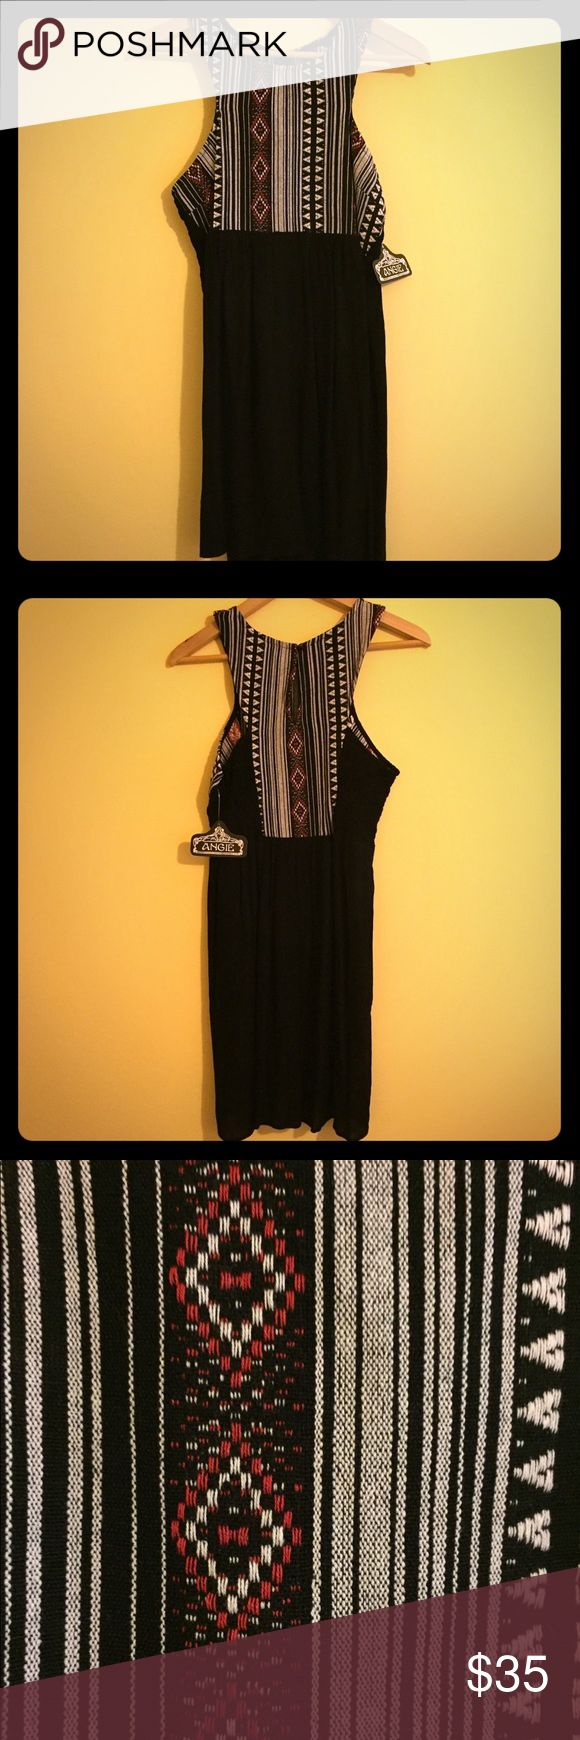 🆕NWT: FESTIVAL DRESS WITH WOVEN BOHO PATTERN Brand new with tags!  This is an adorable dress by ANGIE.  It has a top featuring a boho woven design.  The skirt part is light and airy.   It has a keyhole in the back and gathering details on the sides.  Perfect for the Spring/ Summer festival season! Angie Dresses